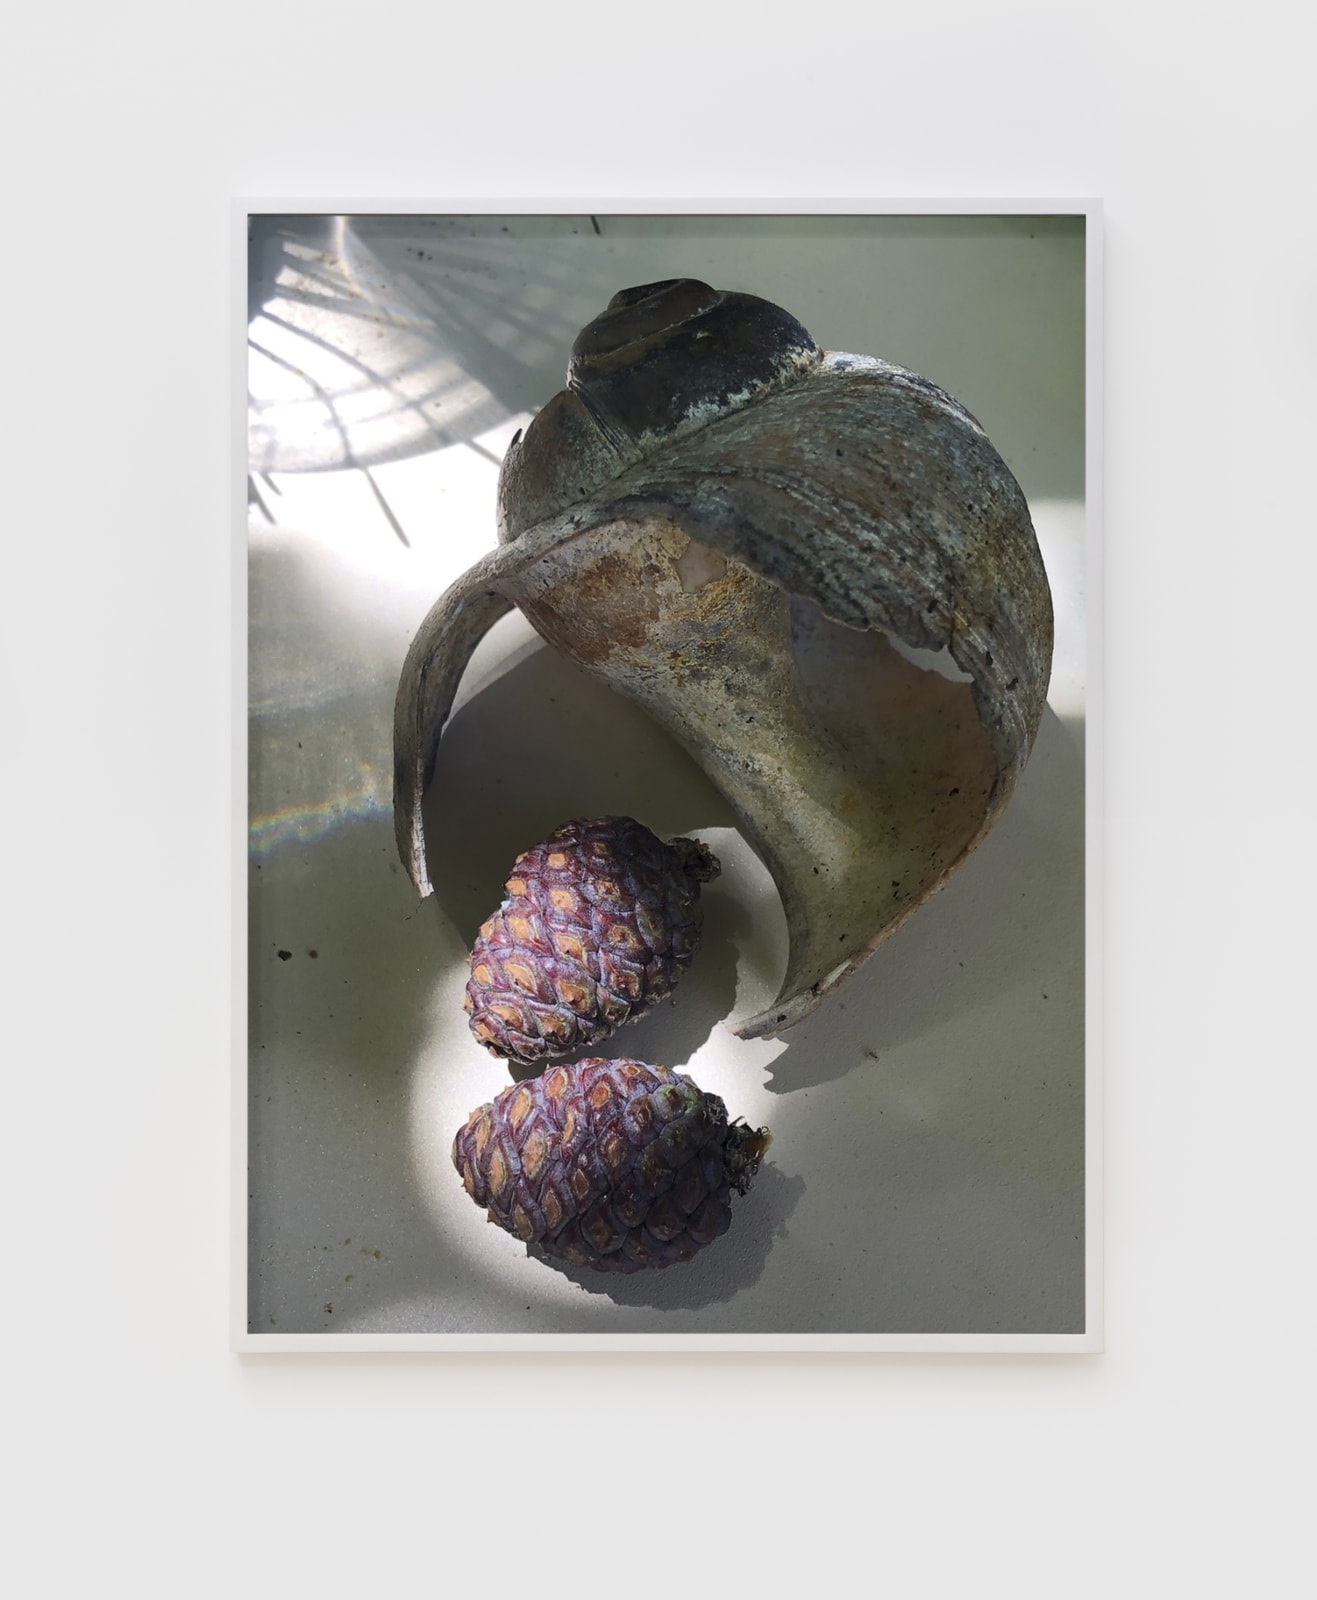 Roe Ethridge Moon Snail and Purple Pinecones , 2020 Dye sublimation print on aluminum 32 x 24 in (81.3 x 61 cm) Edition of 5, with 2 APs